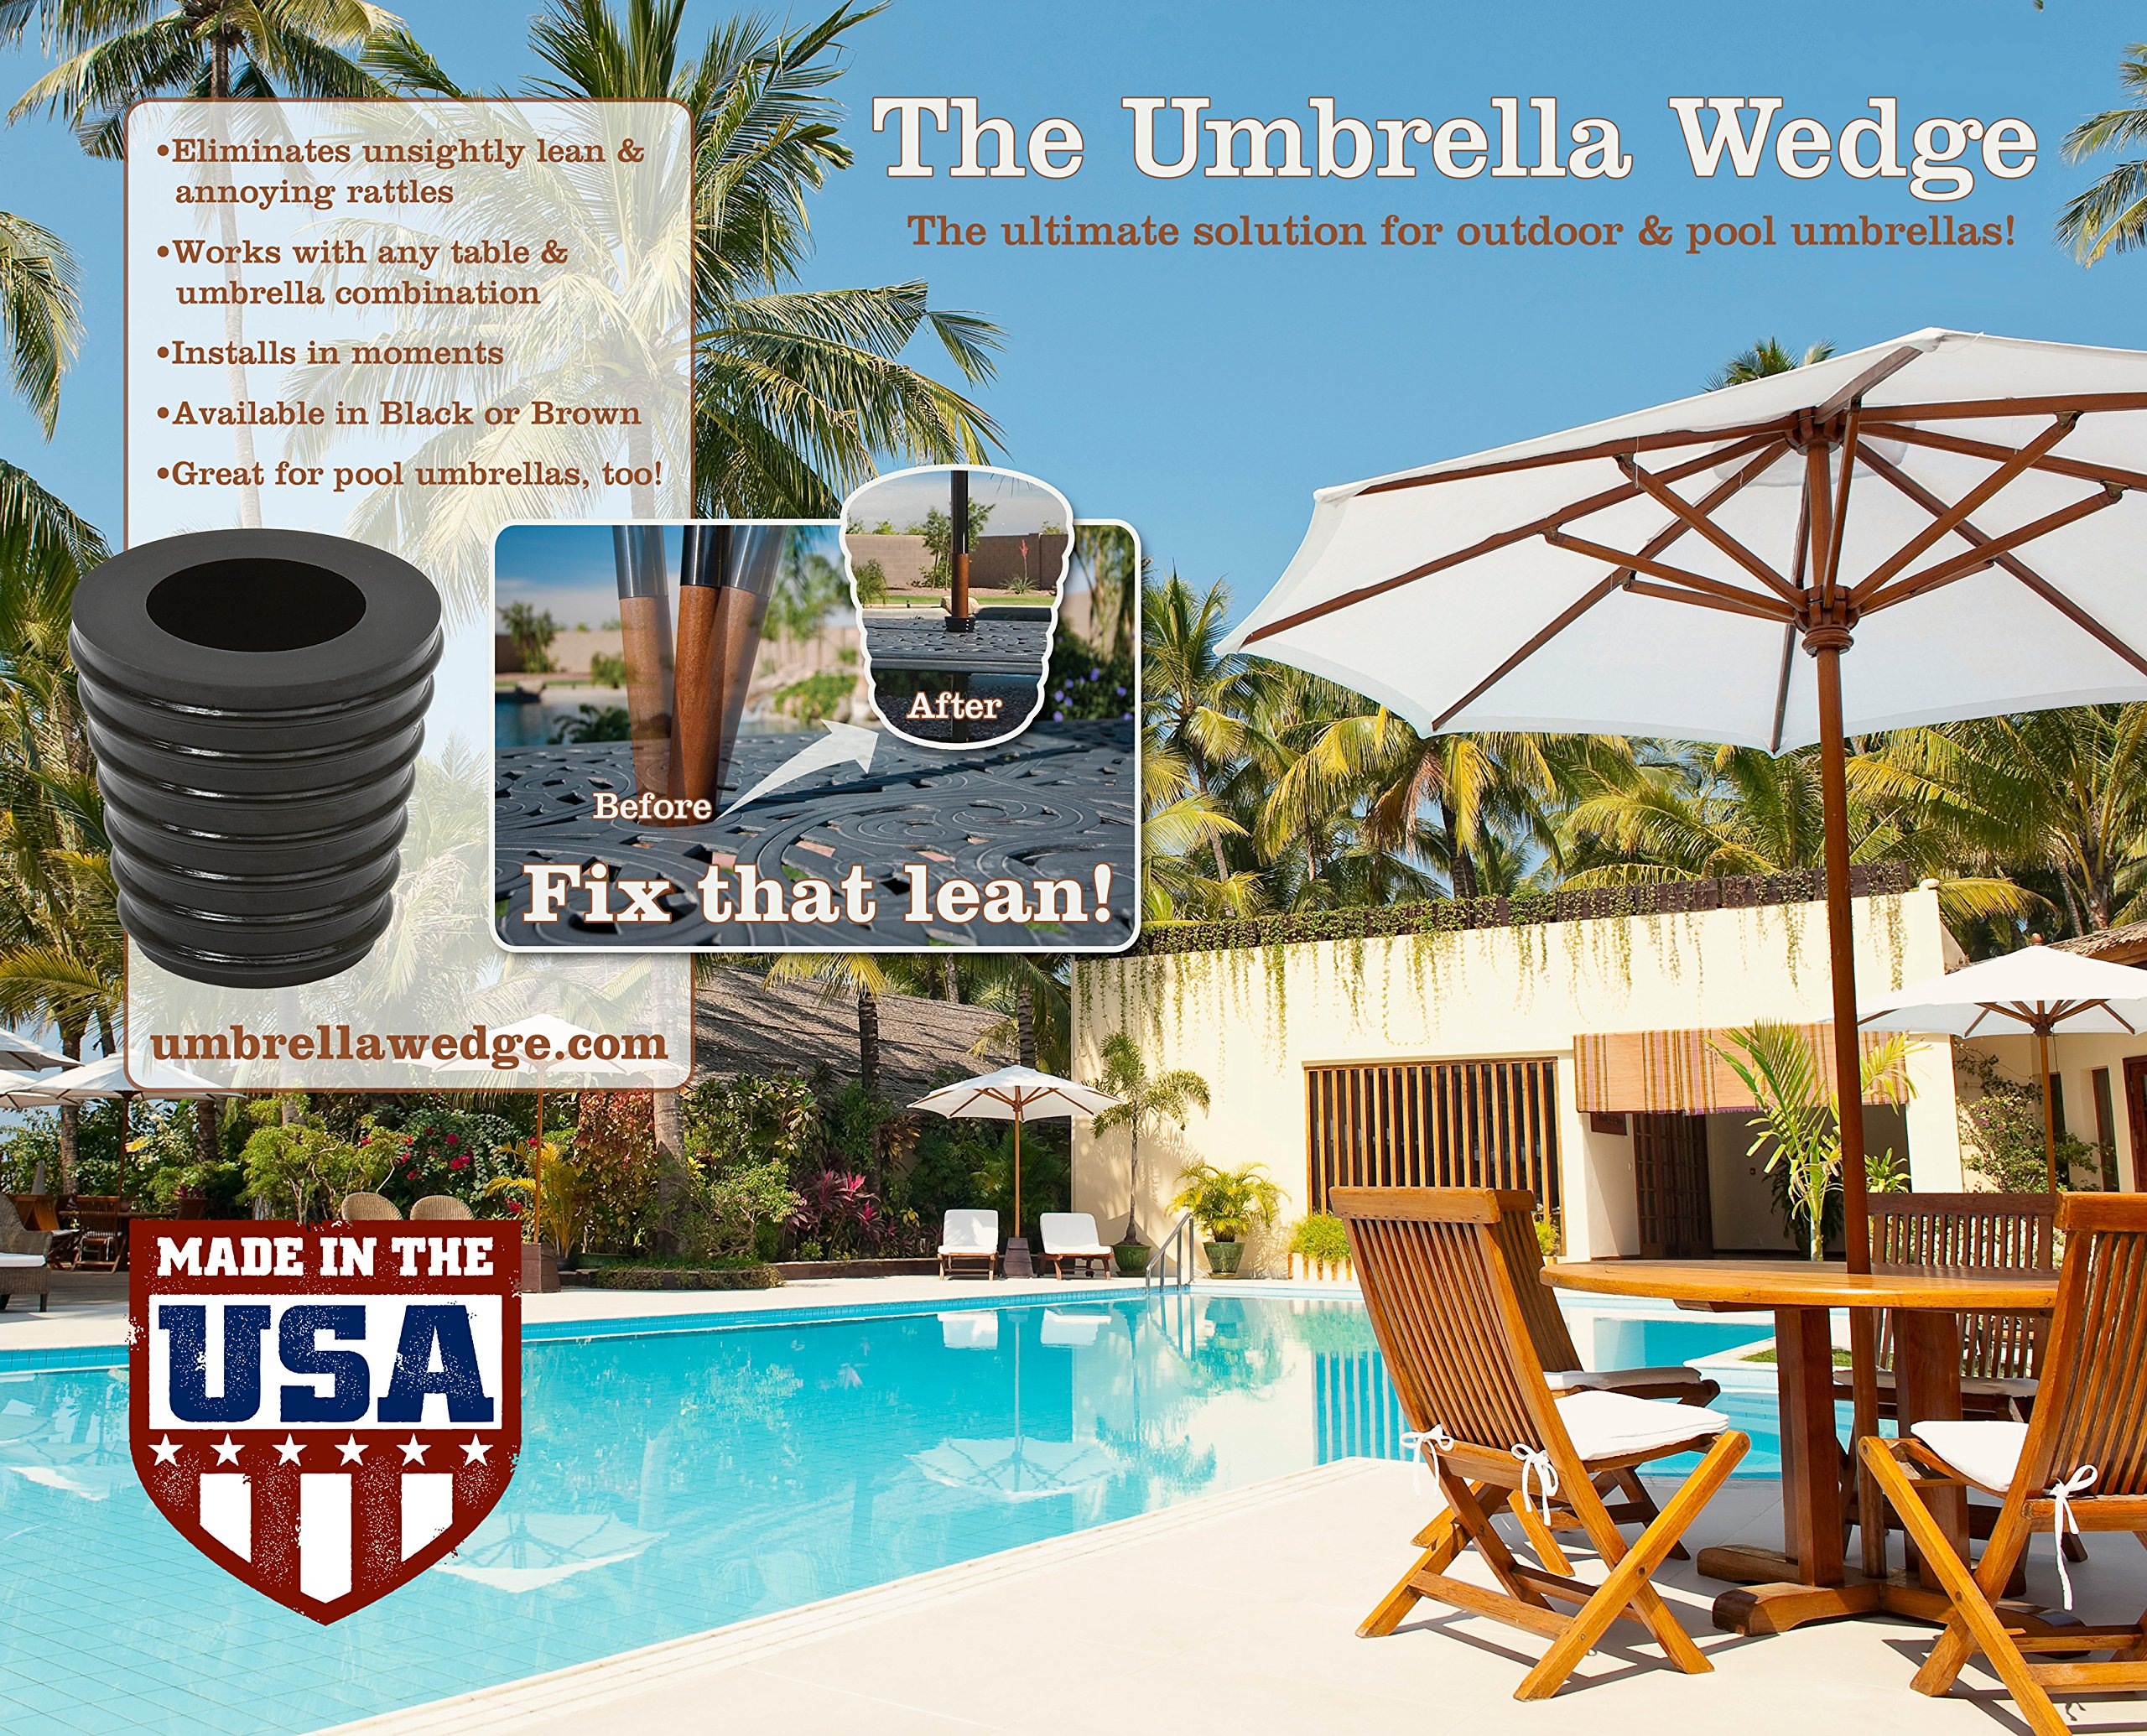 Patio Umbrella Cone (Brown) Fits 1.5'' Umbrella. Weather Resistant Polyurethane. The Original Made in the USA.